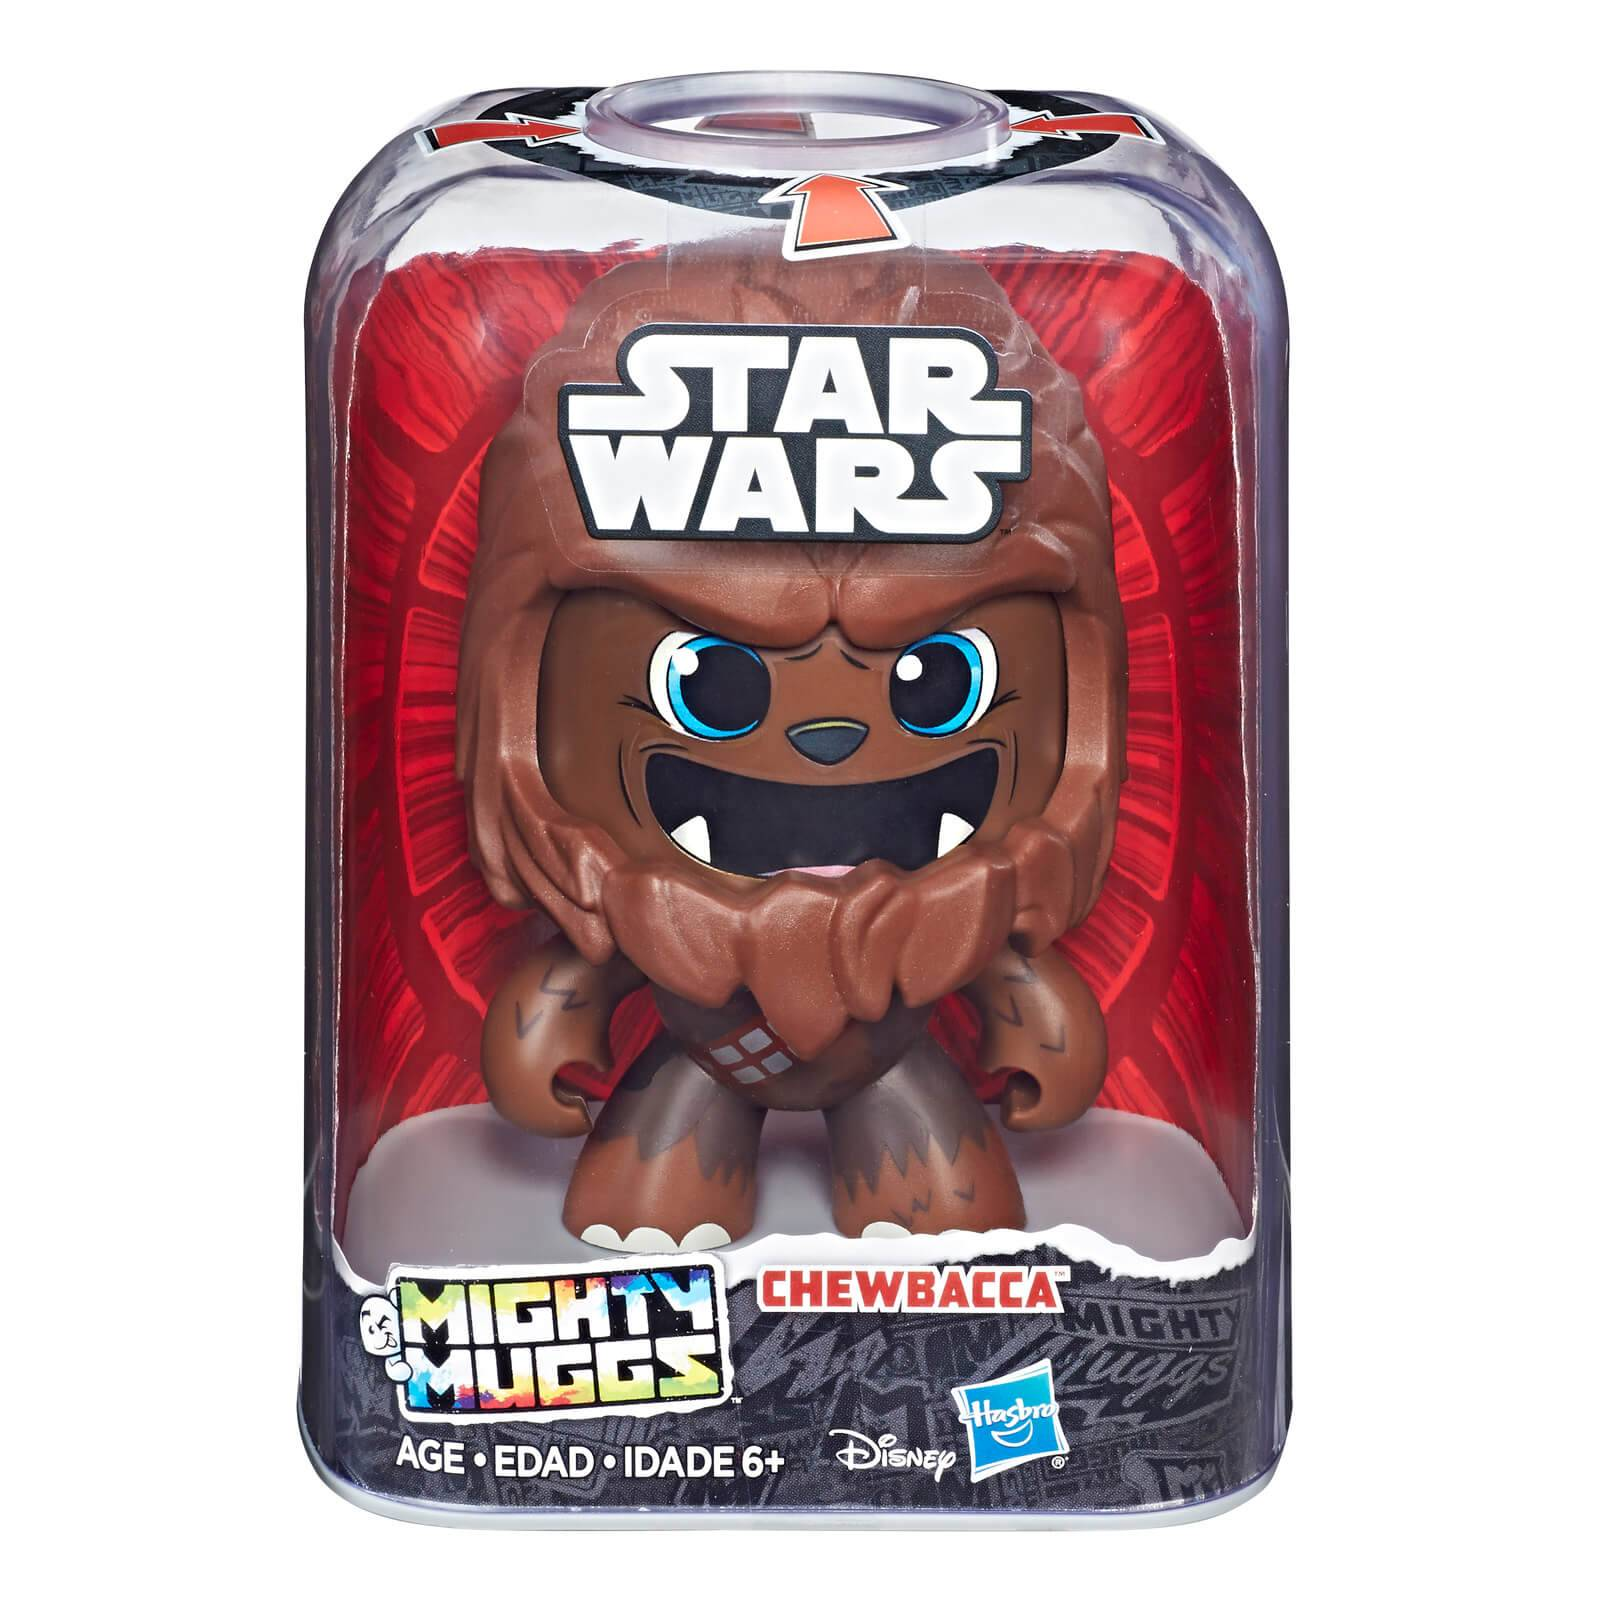 Mighty Muggs Star Wars Episode 4 Mighty Muggs - Chewbacca